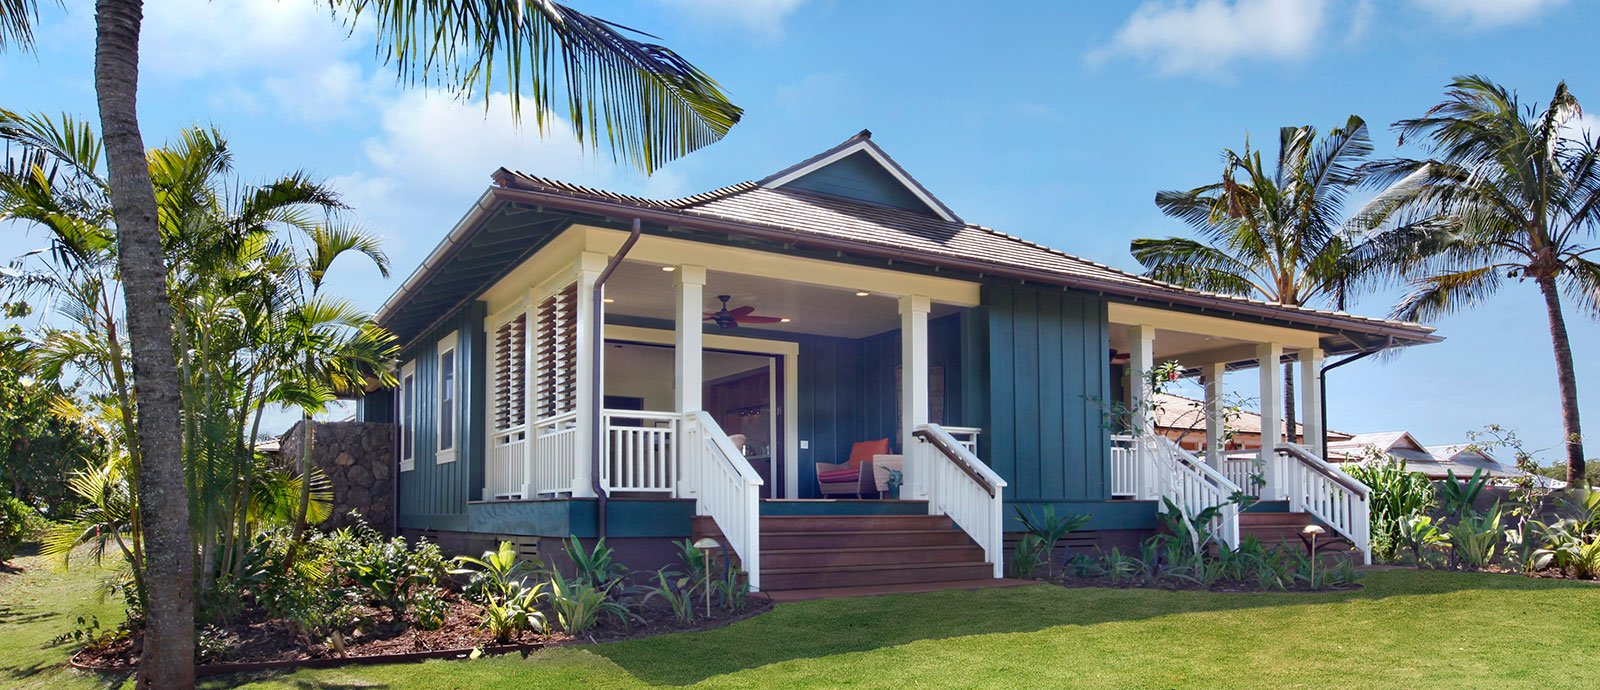 1 bedroom bungalow pictures to pin on pinterest pinsdaddy